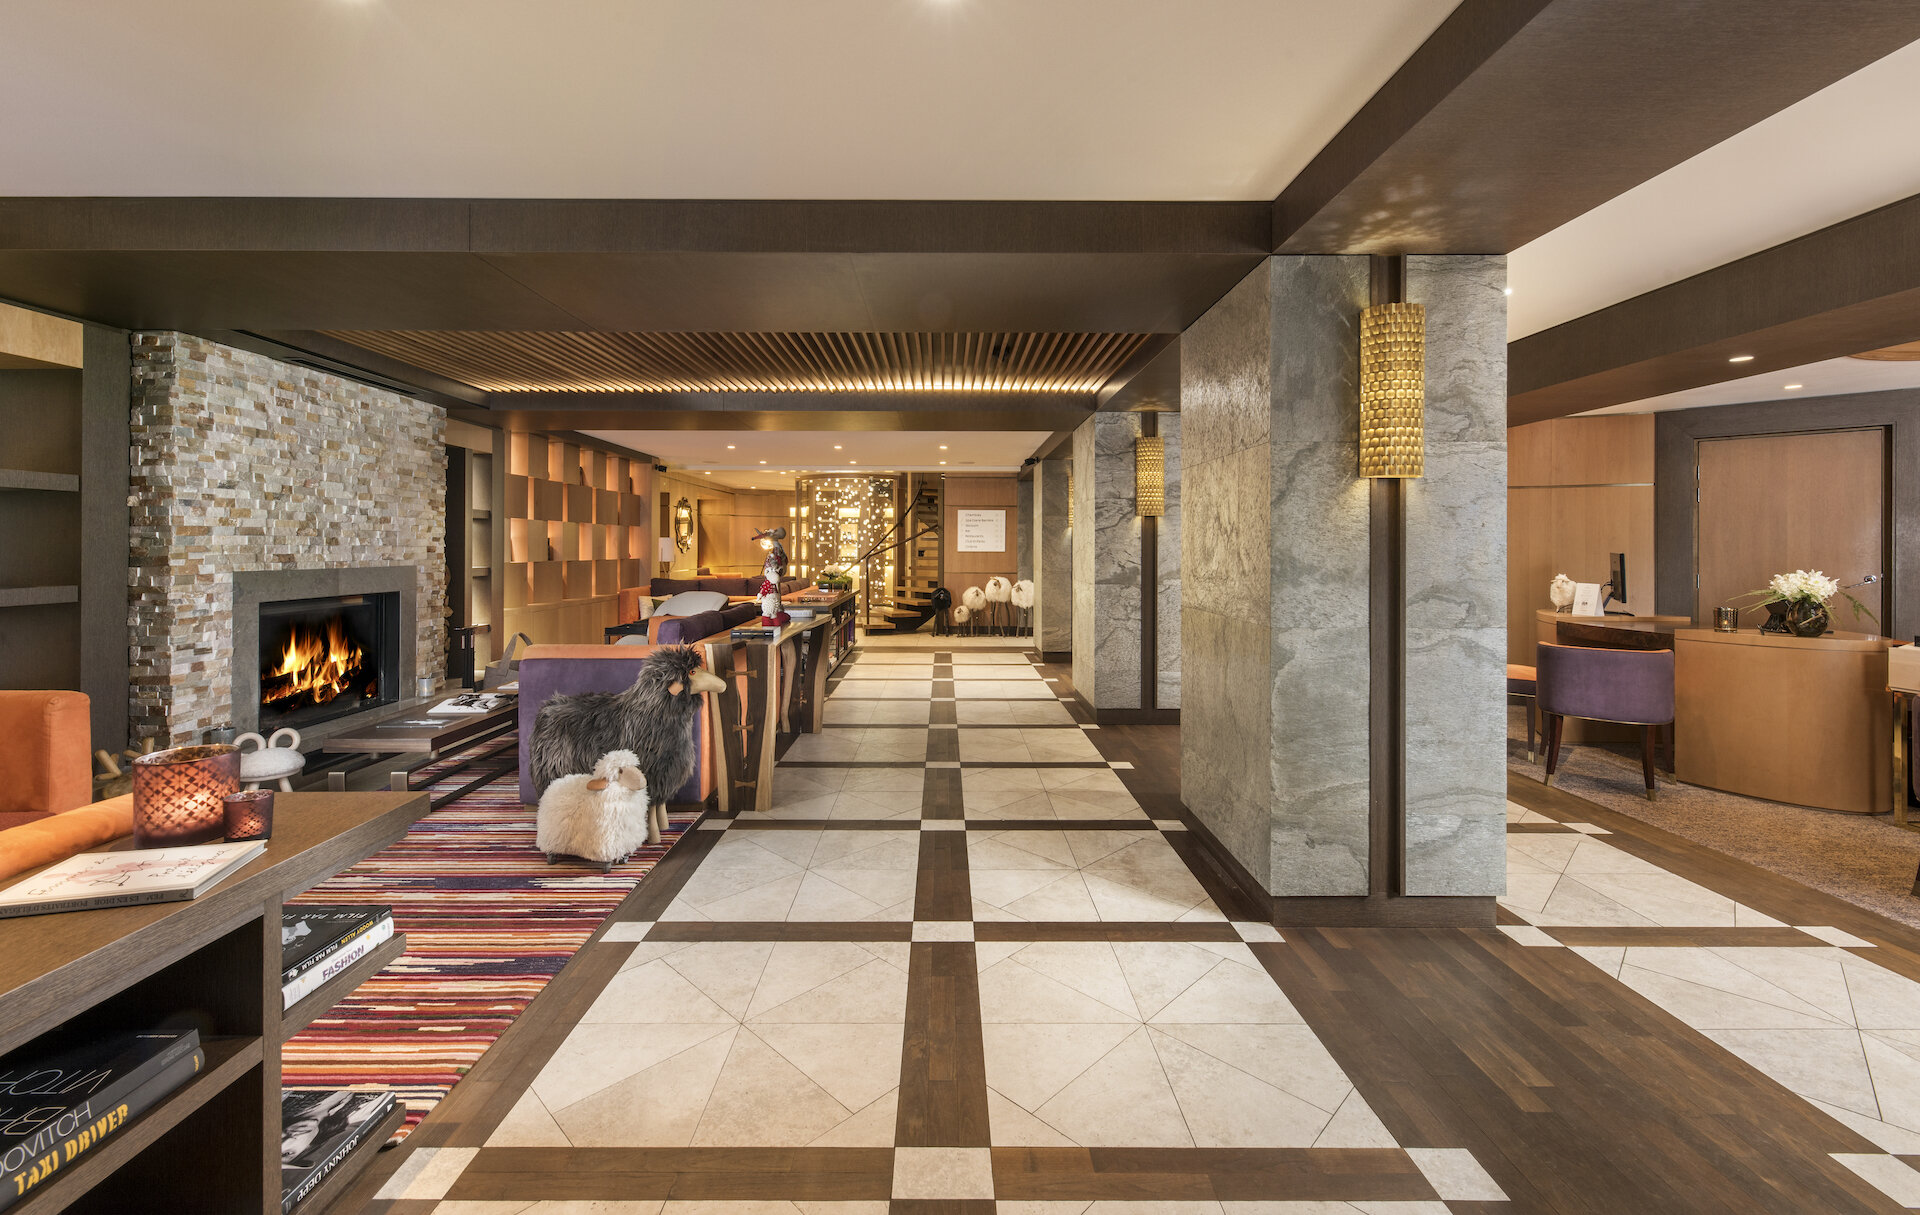 Barriere Hotel Les Neiges Luxury Courchevel Hotels Courchevel